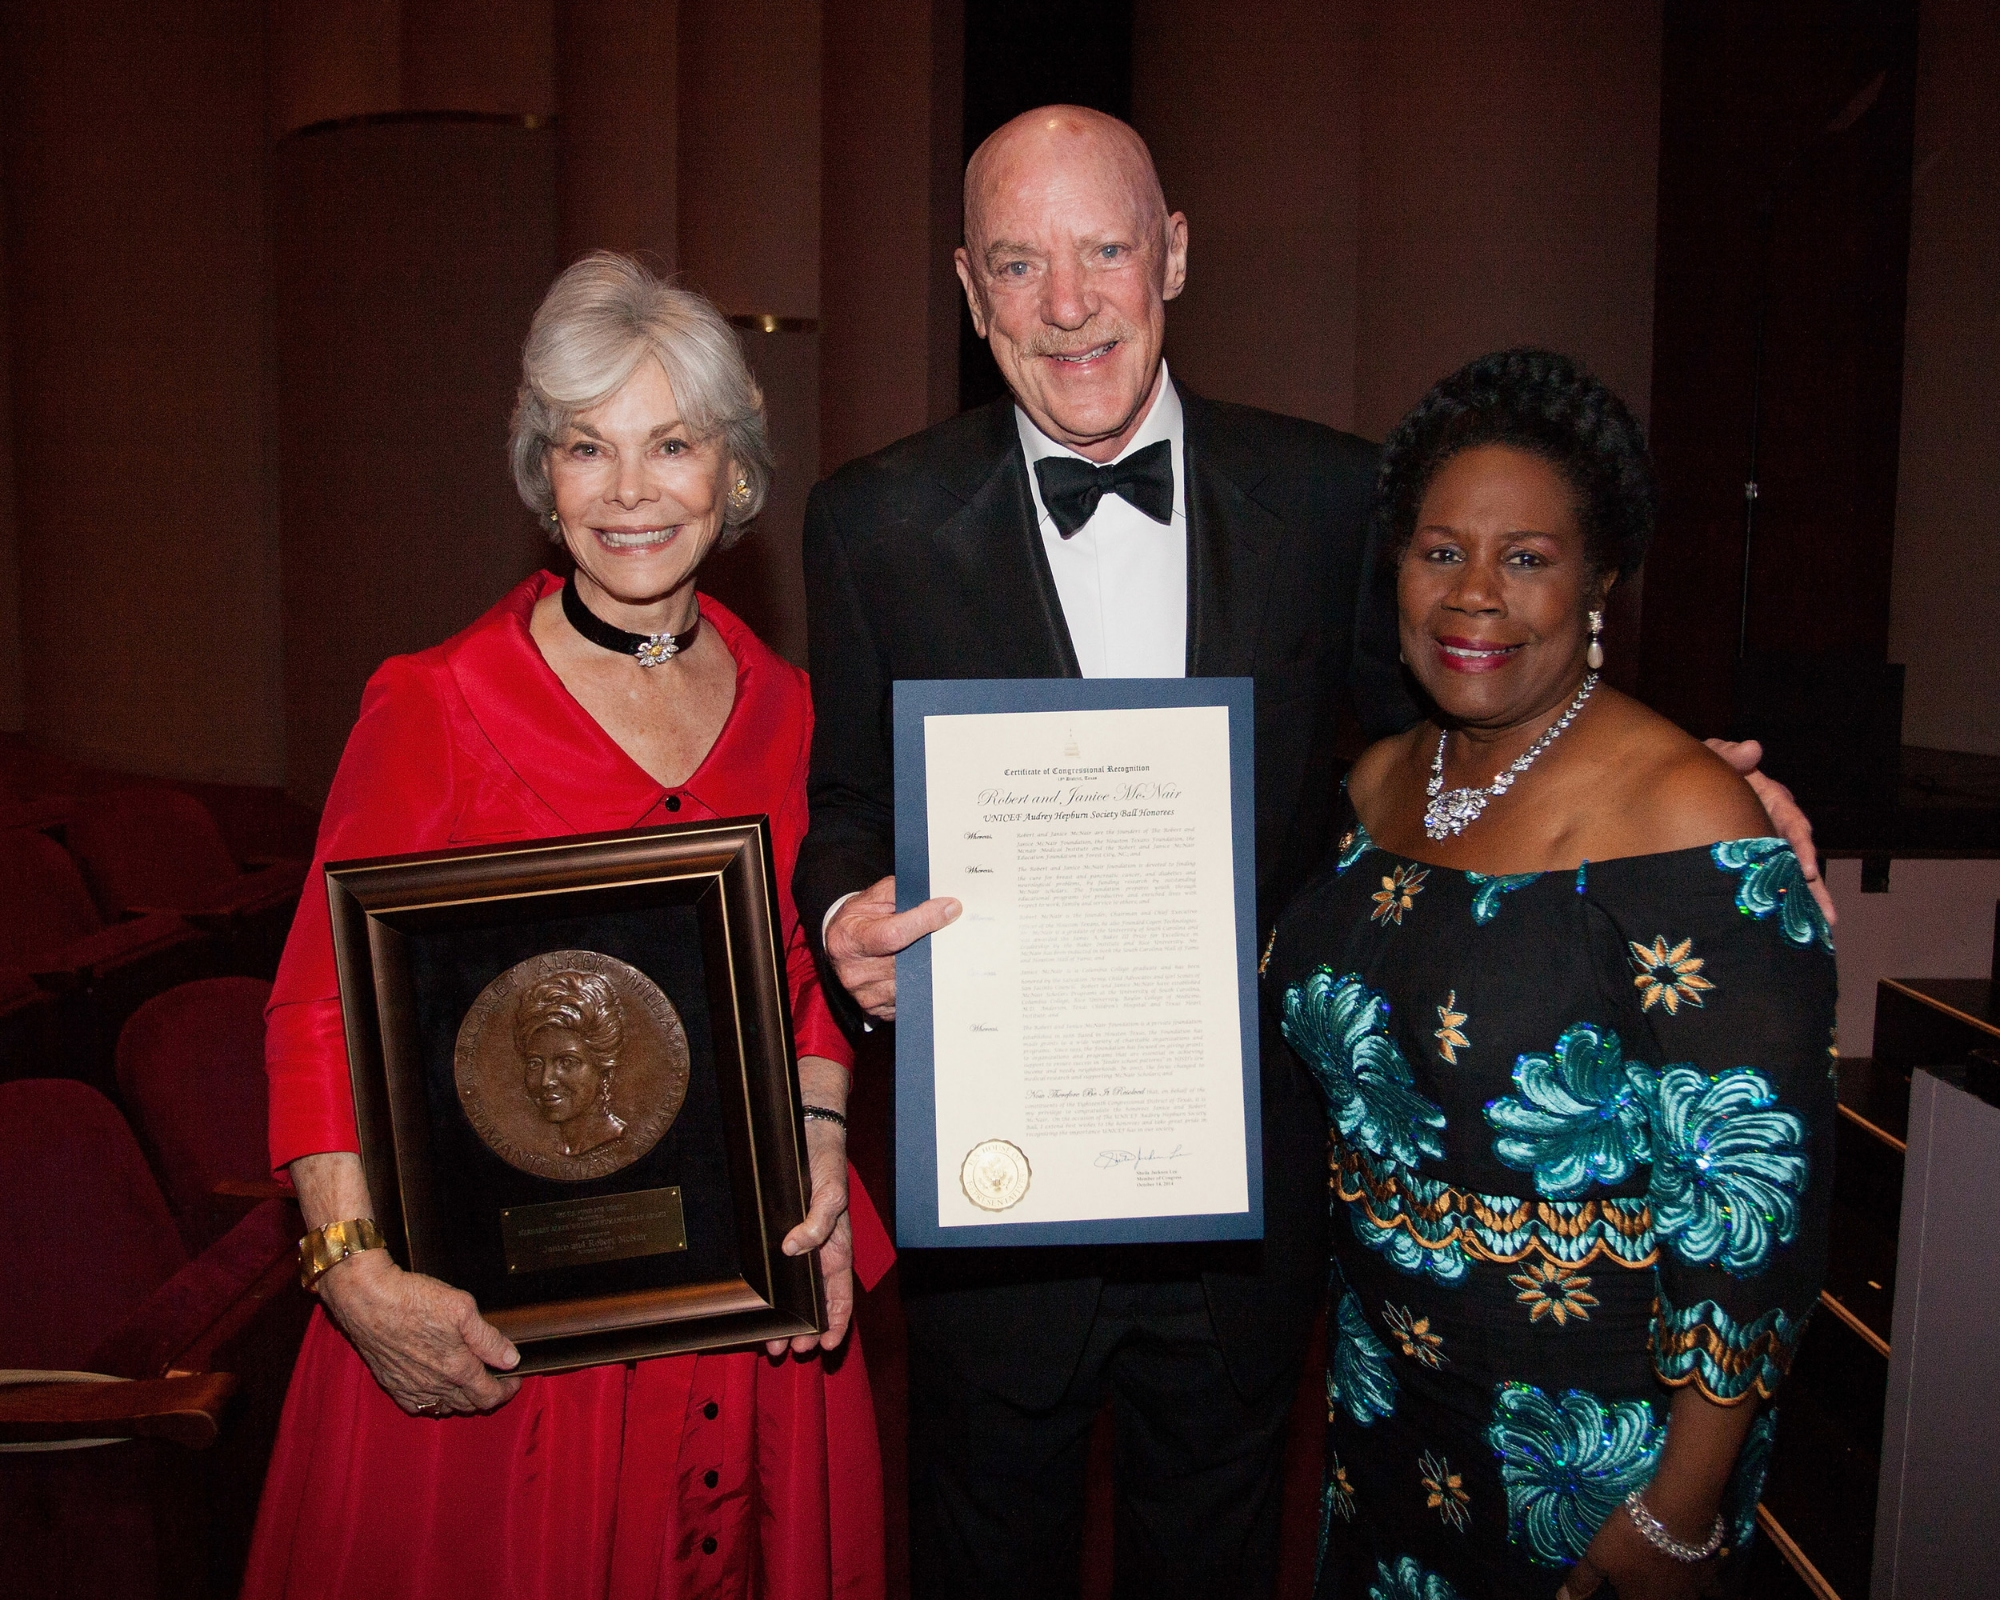 Janice McNair, Robert McNair and Congresswoman Sheila Jackson Lee attend The 2nd Annual UNICEF Audrey Hepburn® Society Ball at the Wortham Center on October 14, 2014 in Houston, Texas. (Photo by Bob Levey/Getty Images for U.S. Fund for UNICEF)